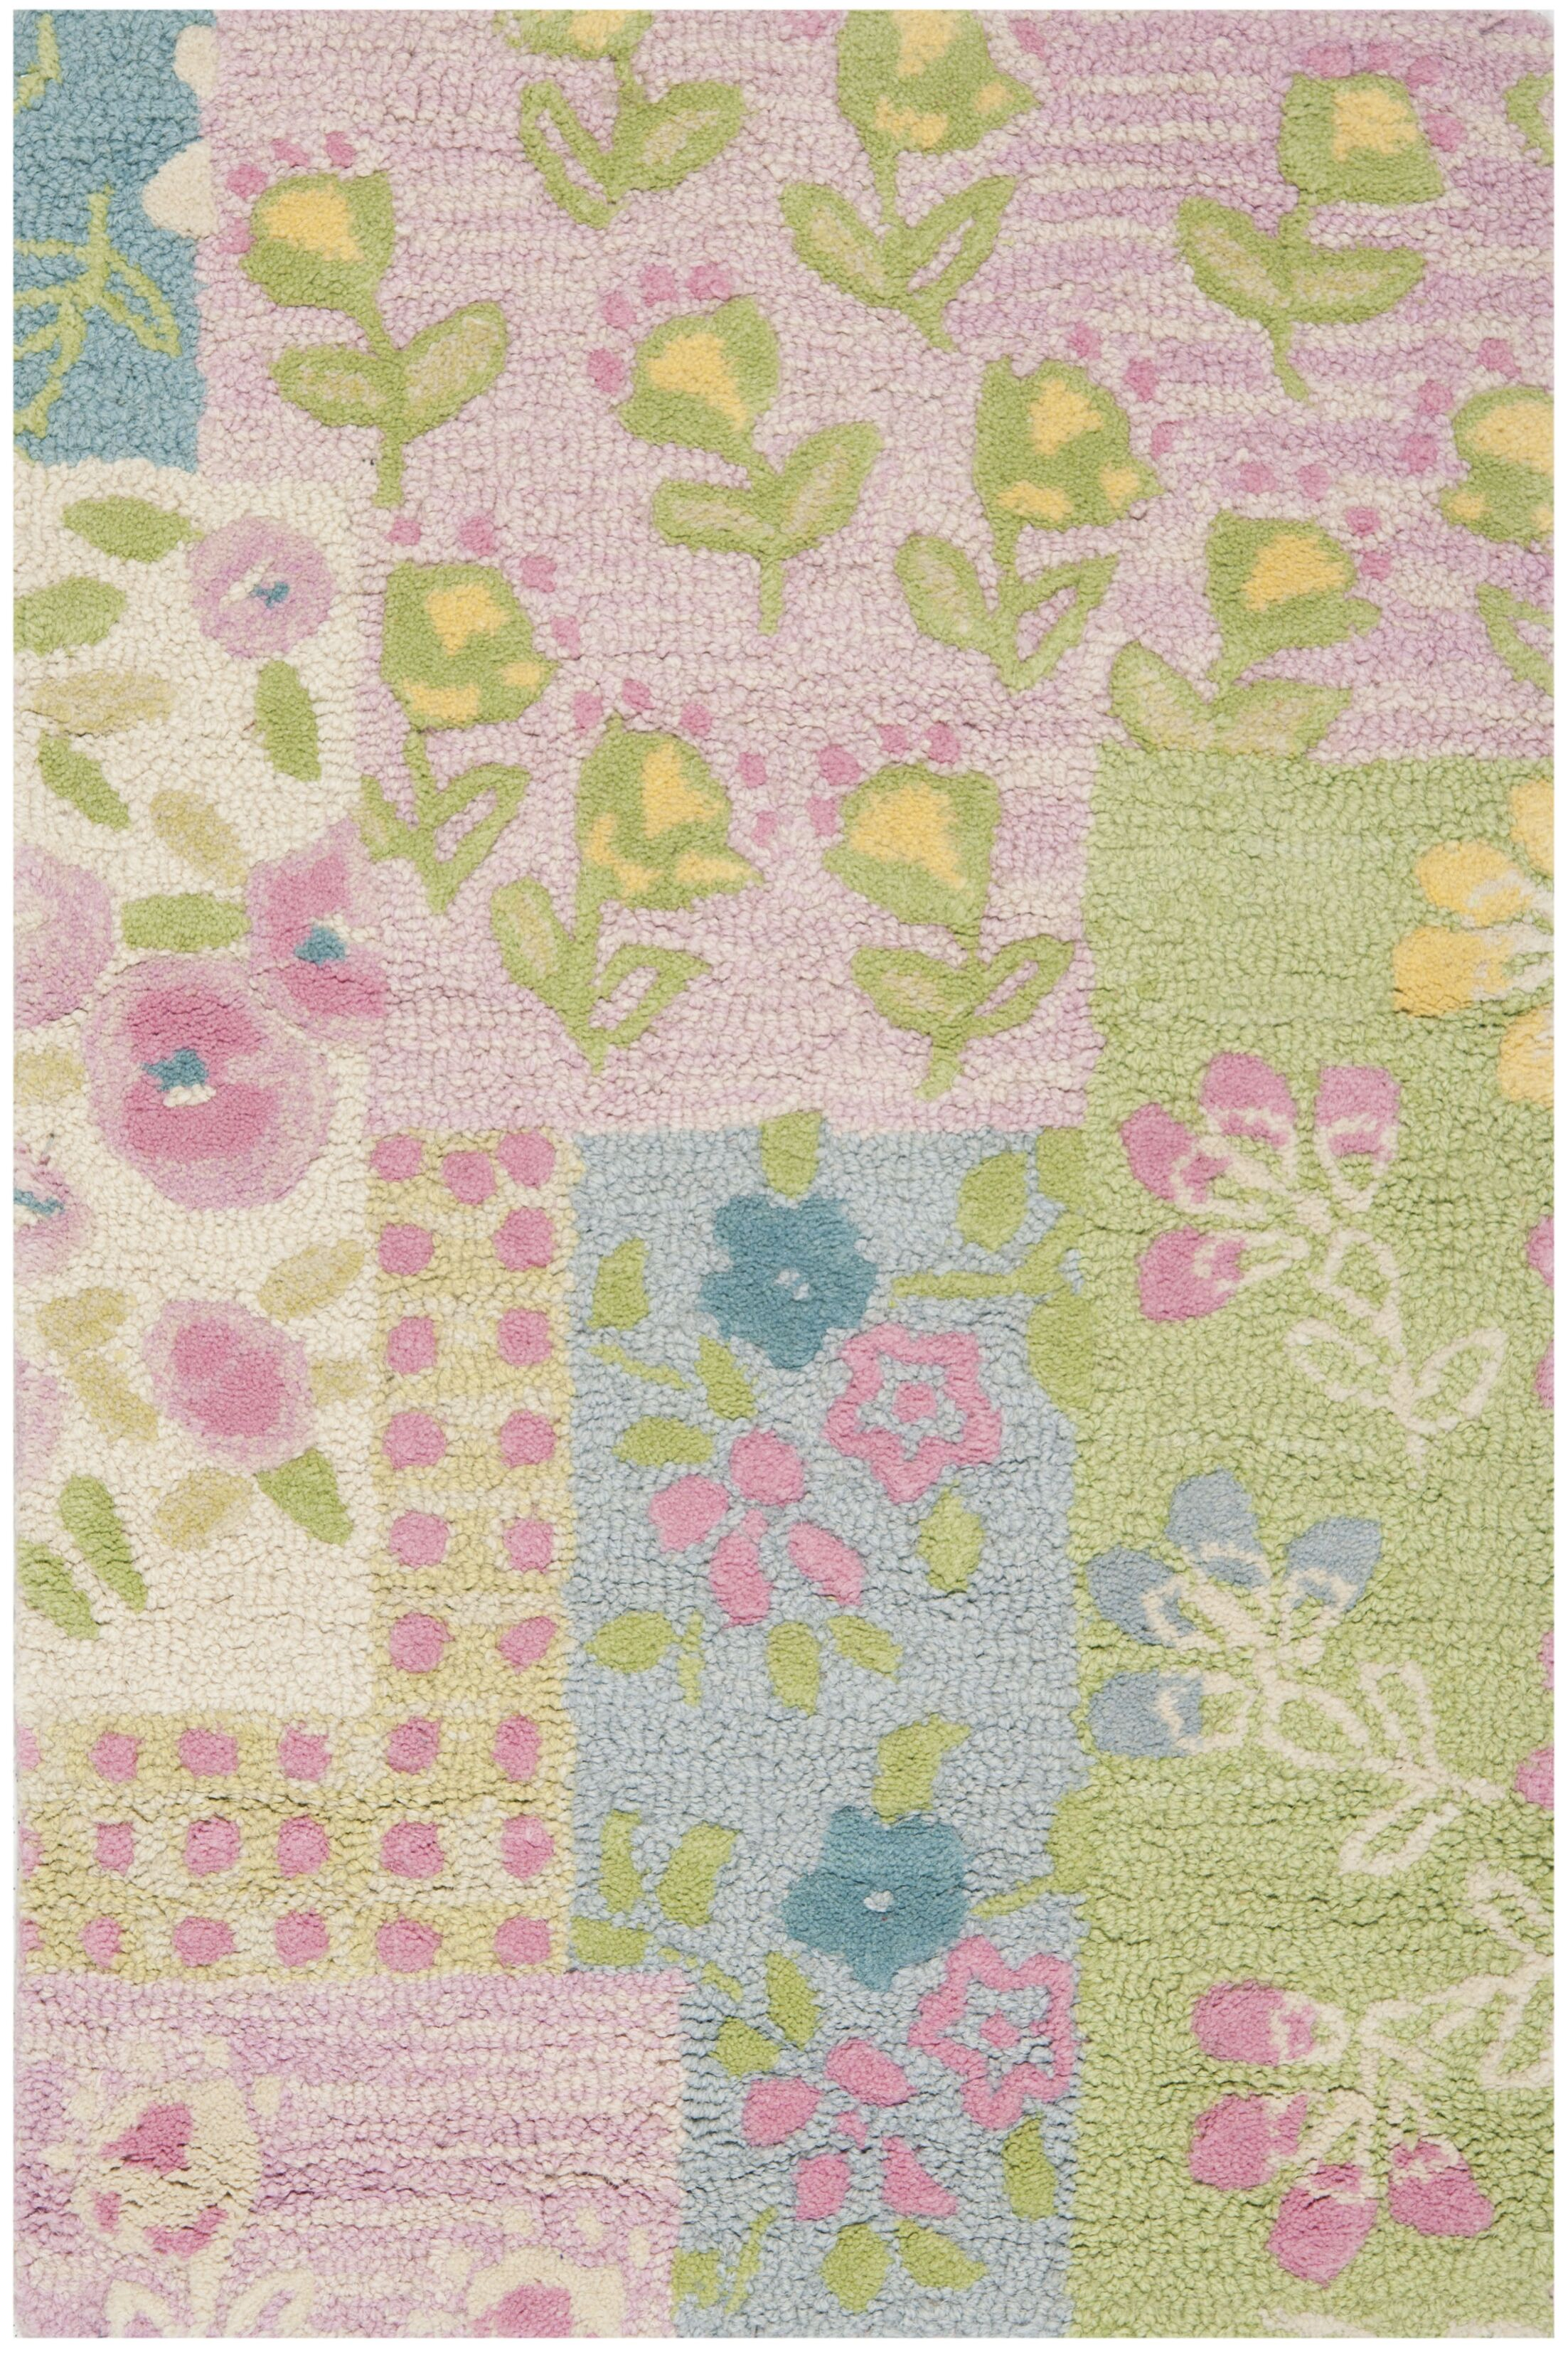 Kids Hand-Tufted Pink/Green Area Rug Rug Size: Rectangle 3' x 5'